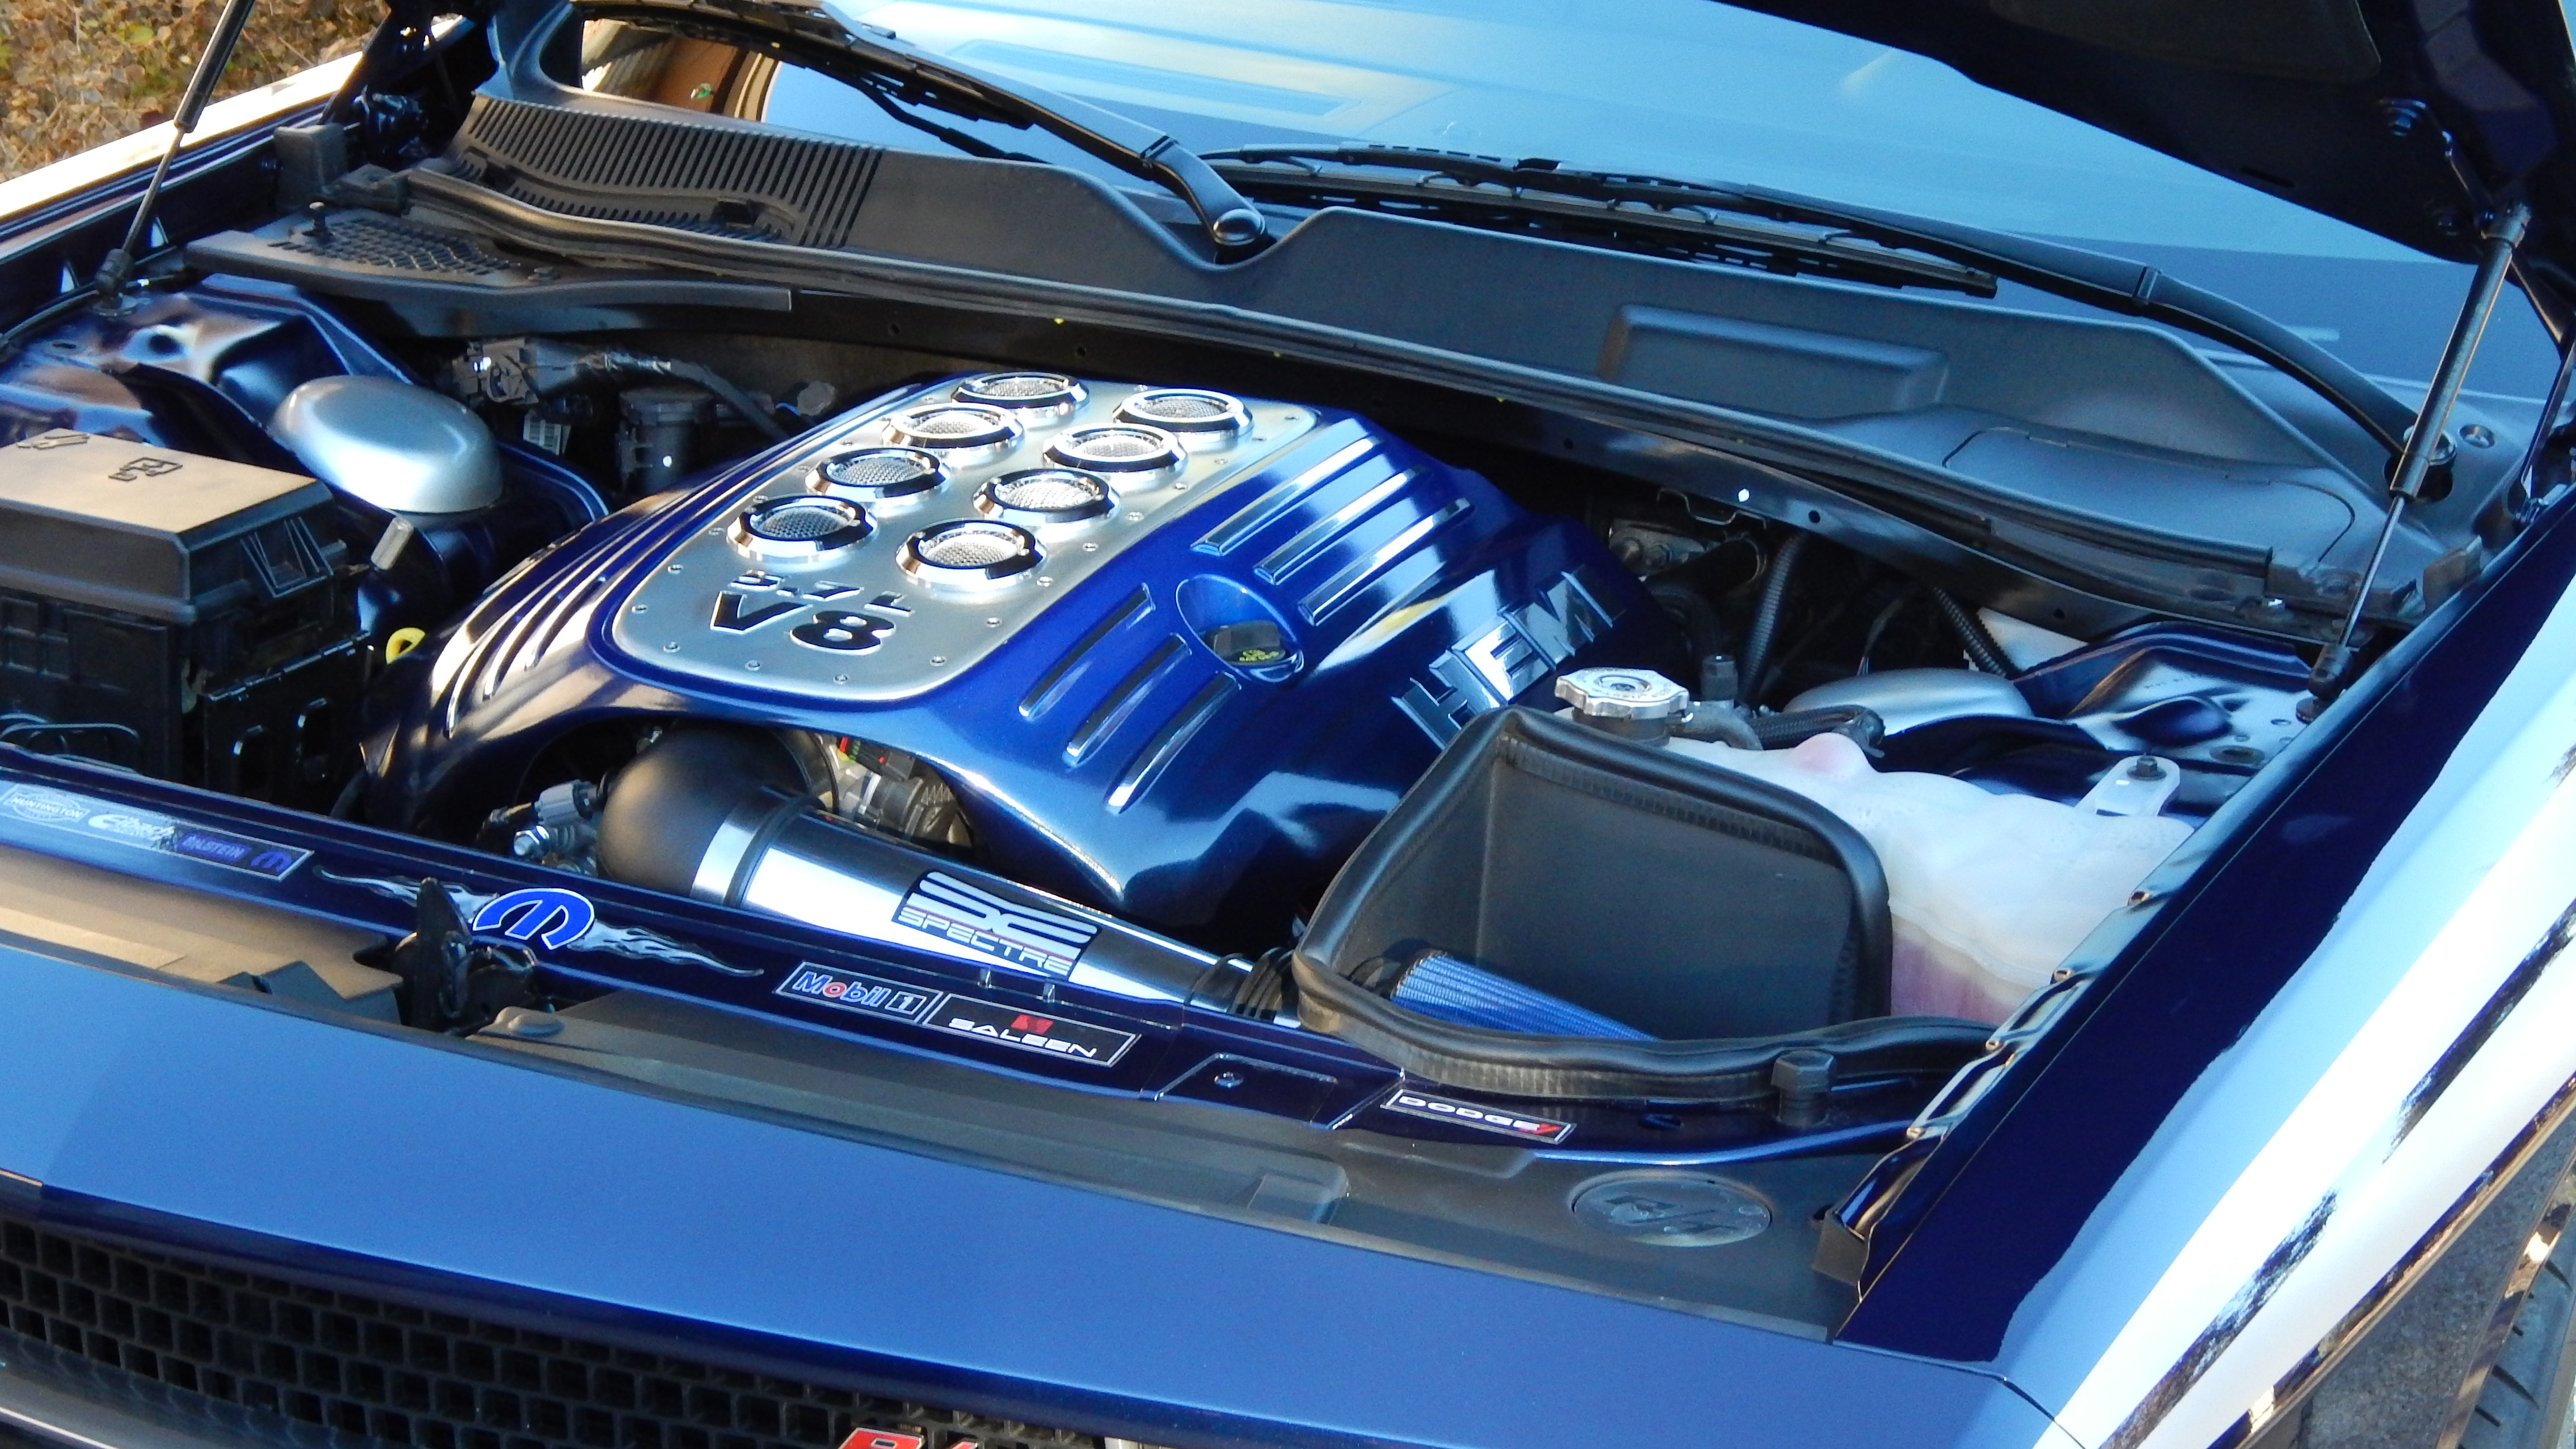 Custom detailed engine bay.............. - 19060450